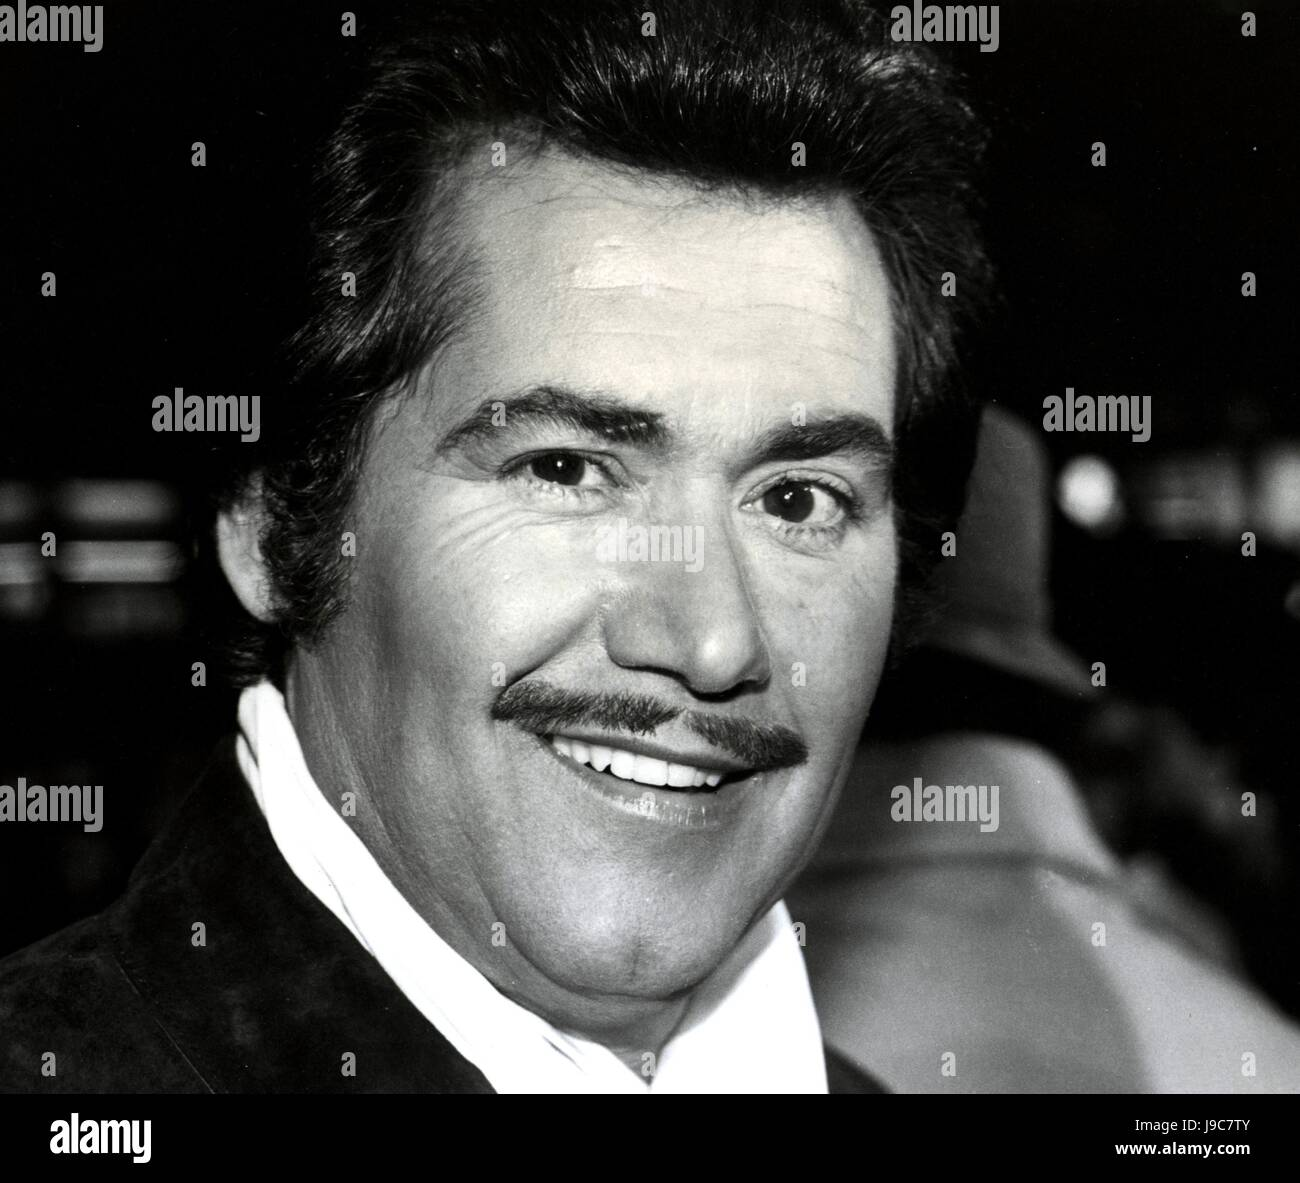 wayne newton vegas stock photos  u0026 wayne newton vegas stock